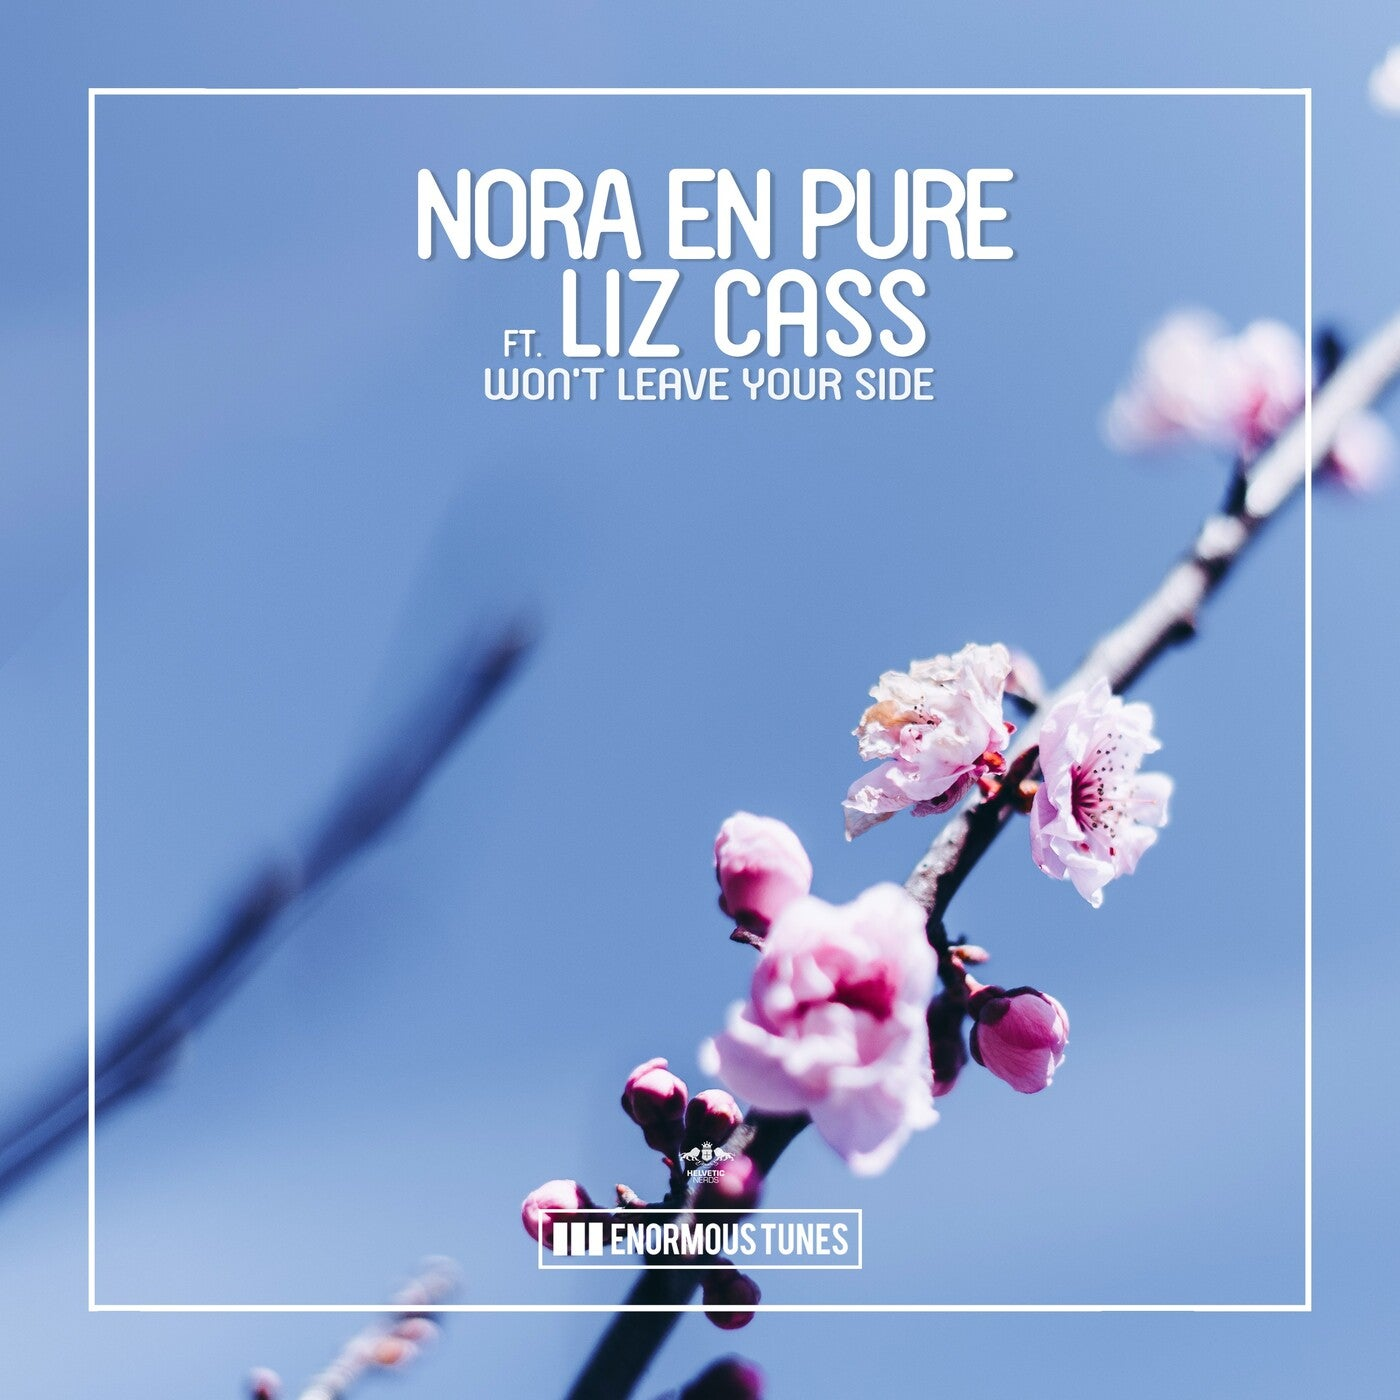 Won't Leave Your Side feat. Liz Cass (Extended Mix)